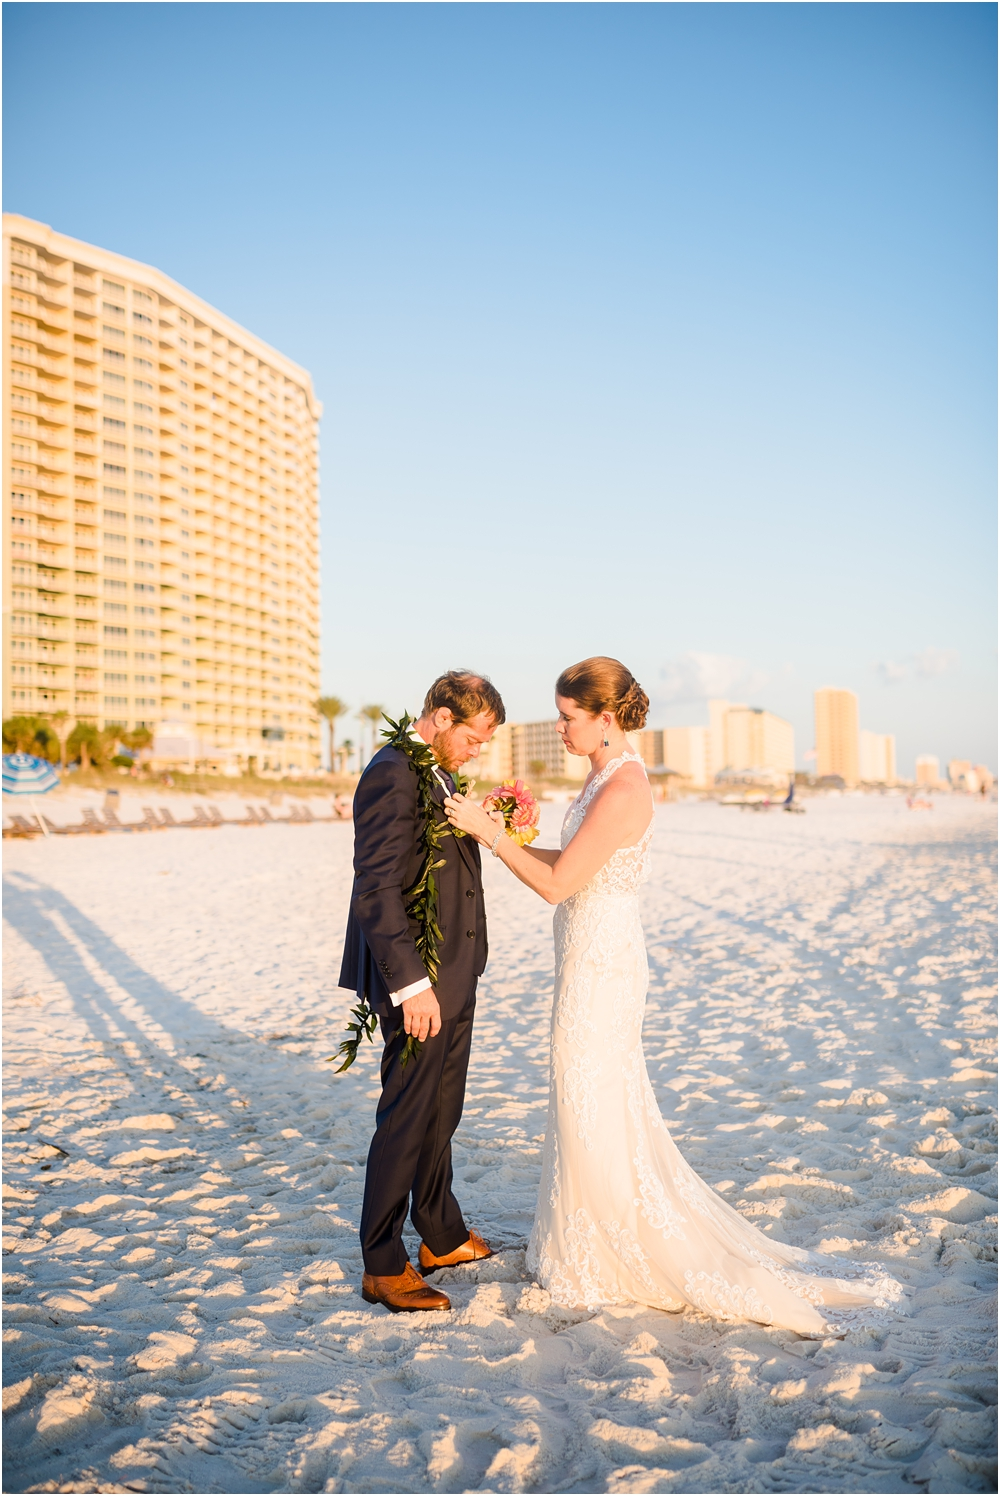 ledman-wedding-kiersten-stevenson-photography-30a-panama-city-beach-dothan-tallahassee-(438-of-763).JPG